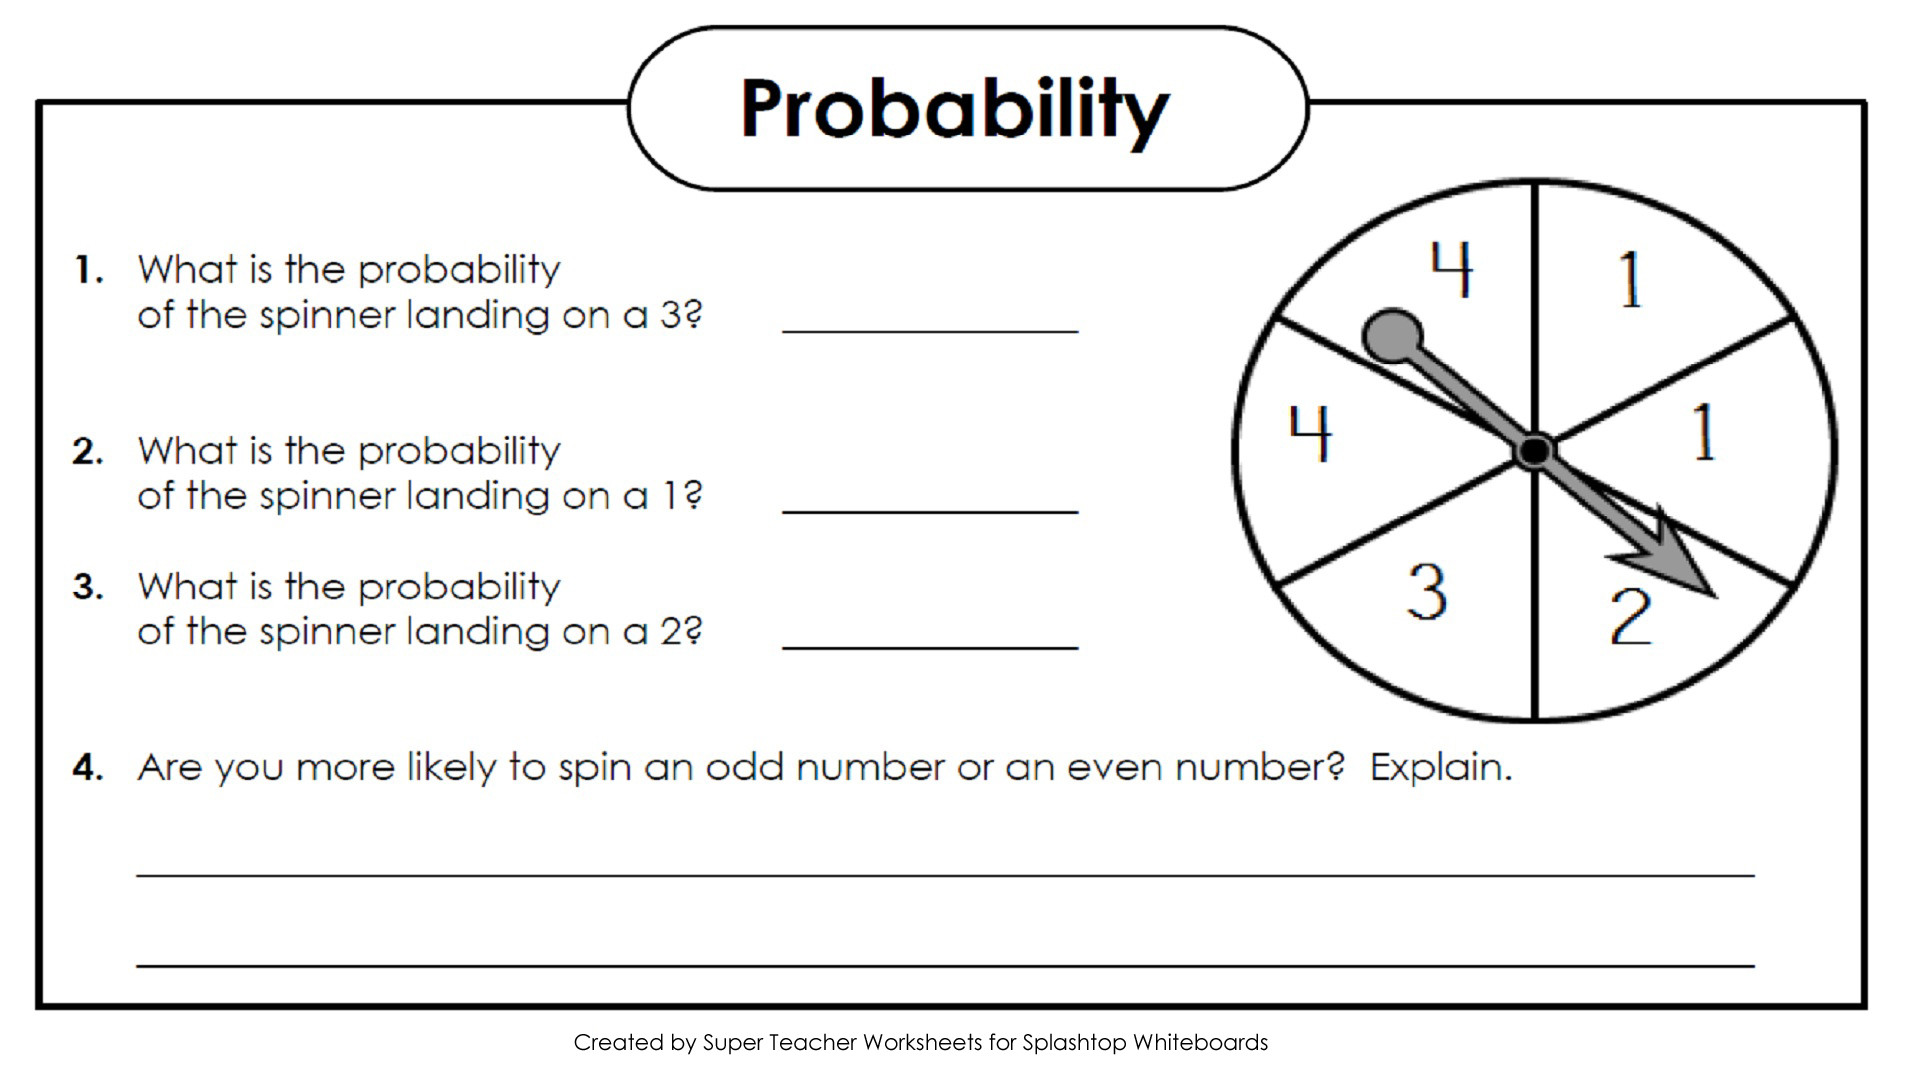 Probability Worksheets 7th Grade Pdf Splashtop Whiteboard Background Graphics